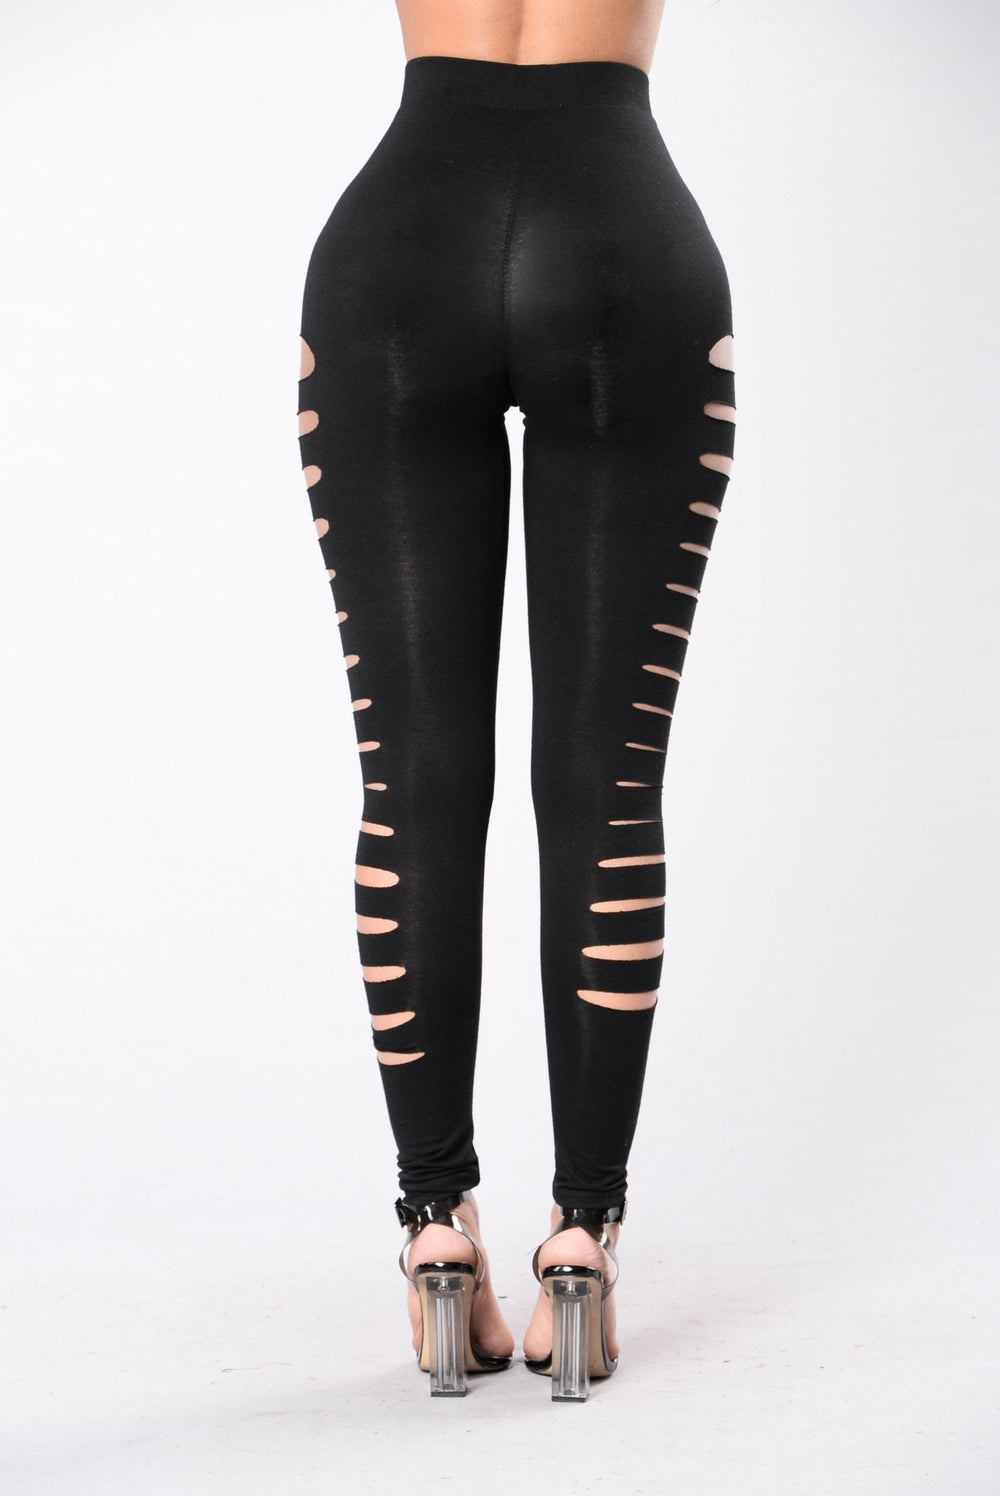 Not Much To Discuss Leggings - Black